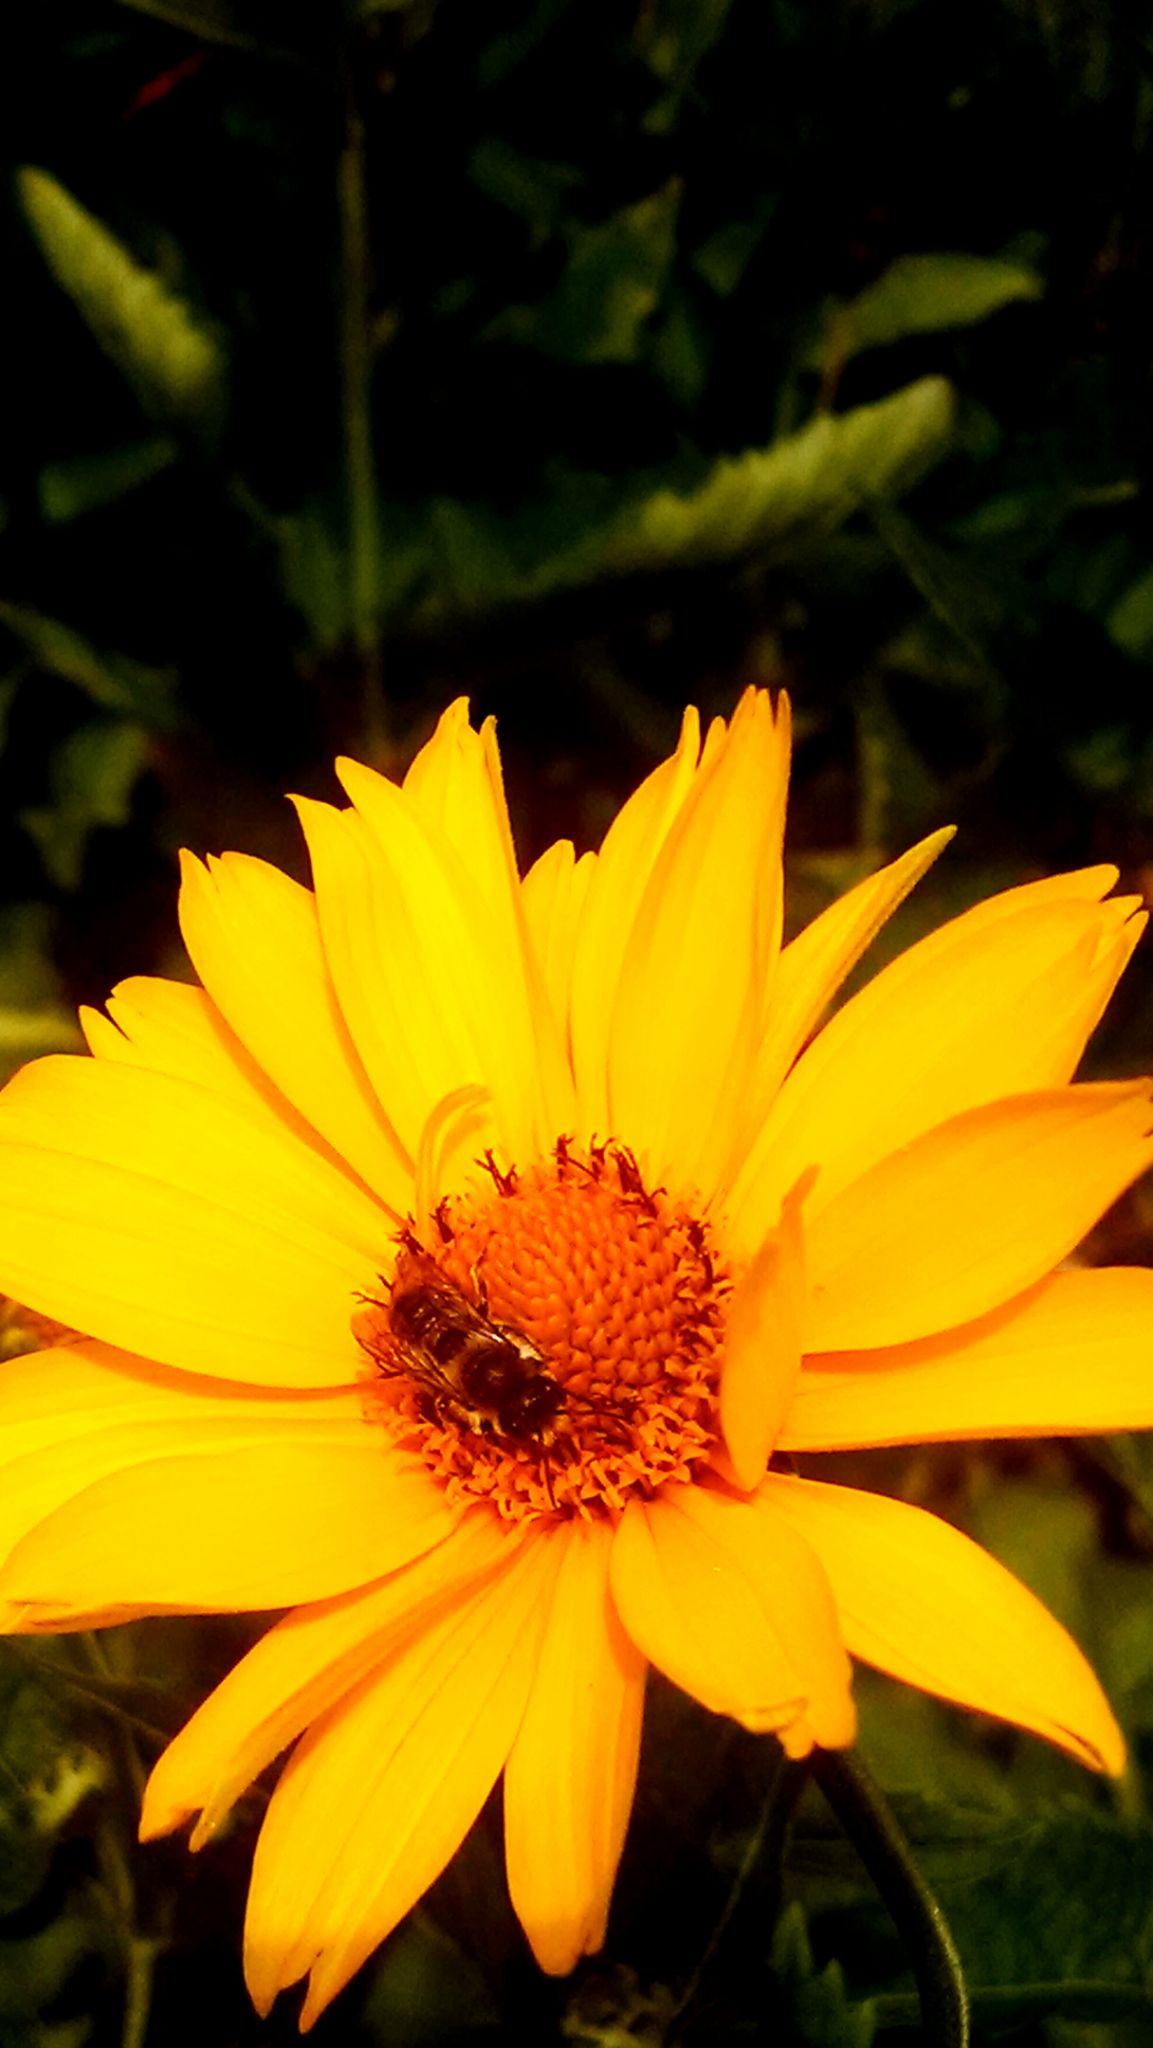 IMG_20140626_165737 by Jim McAvoy